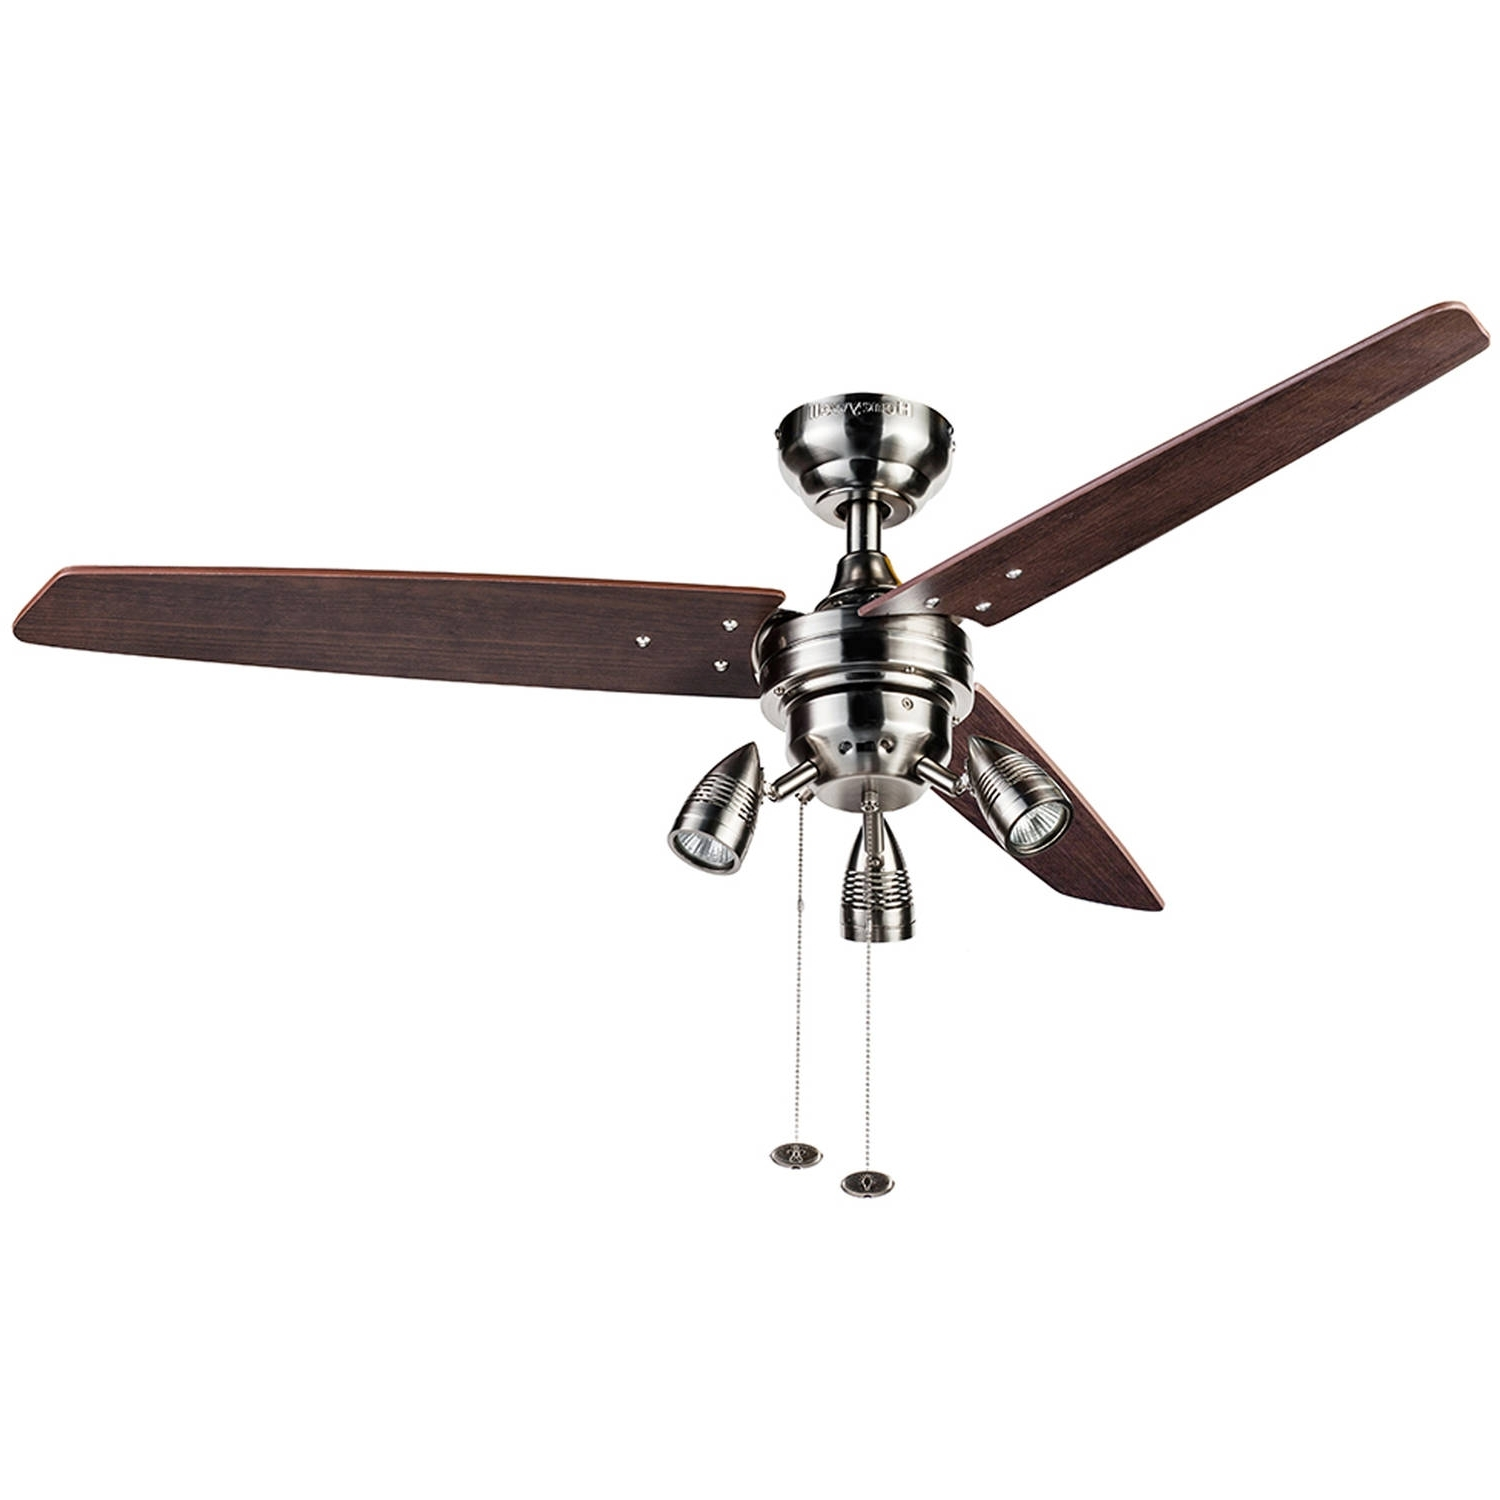 Kmart Outdoor Ceiling Fans With 2018 Ceiling Fan: Recomended Walmart Ceiling Fans For Home Kmart Ceiling (View 6 of 20)